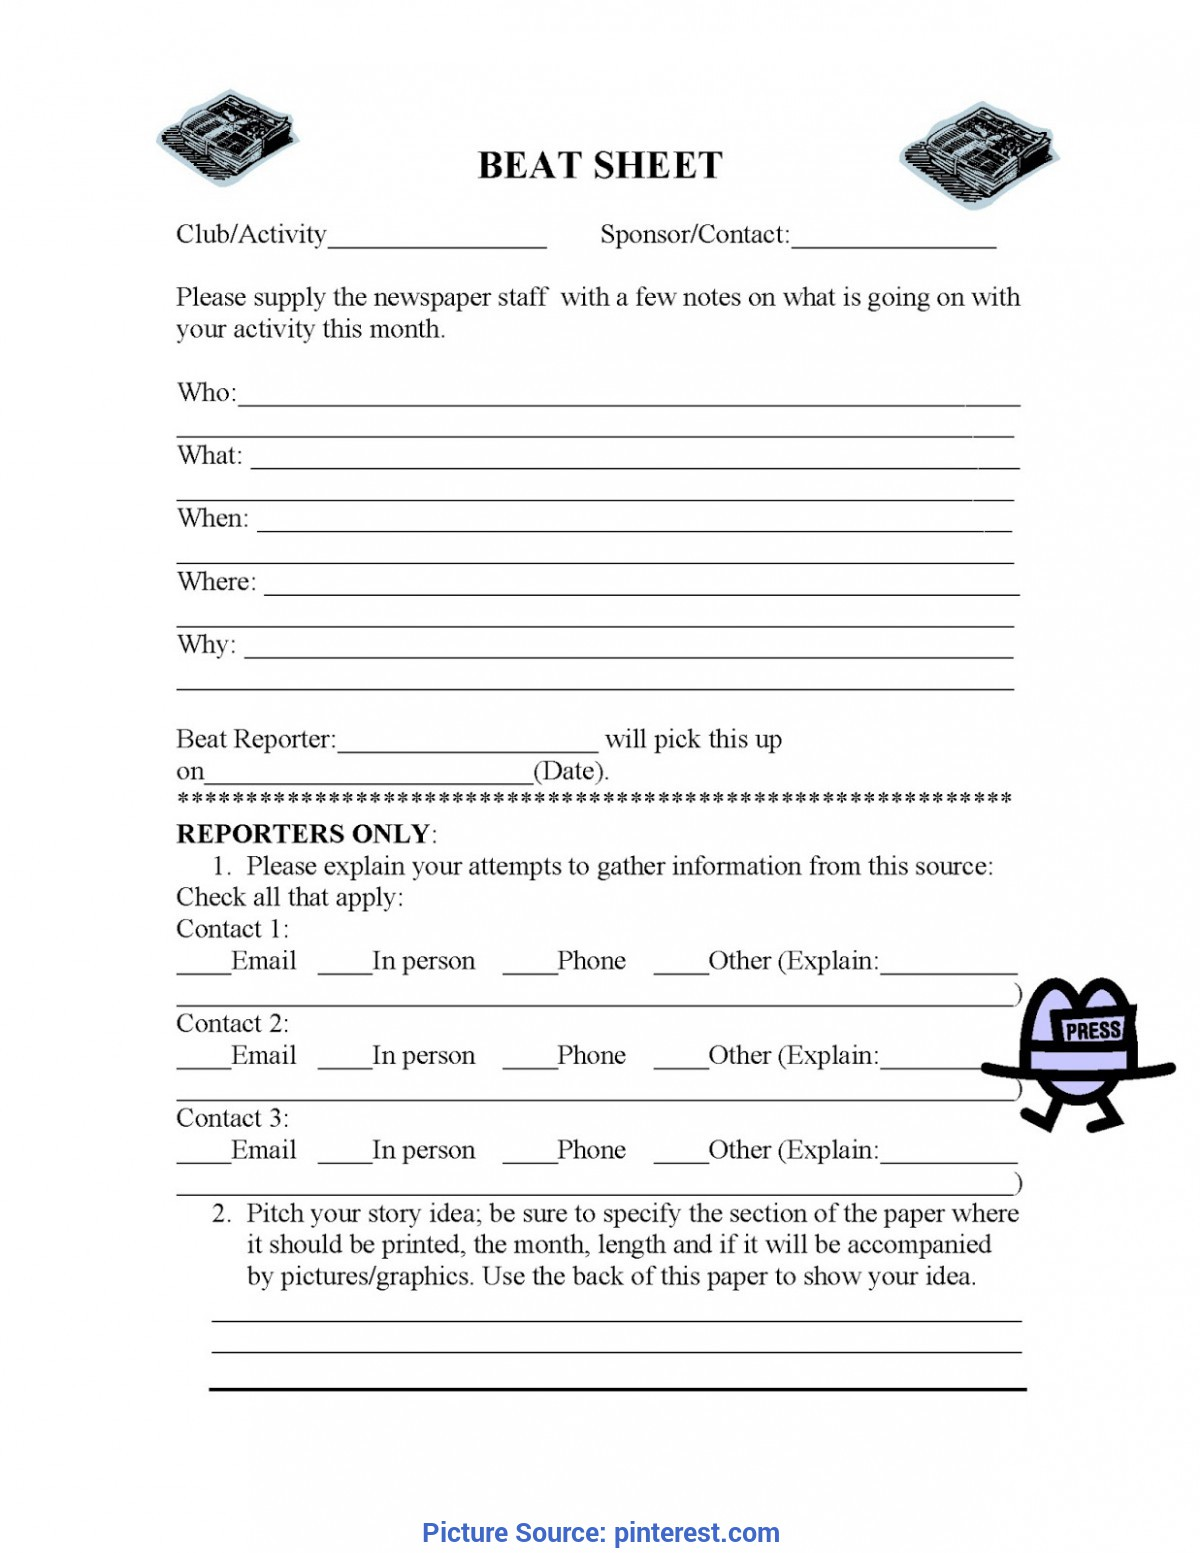 Fresh Esl Lesson Plans For High School Students Journalism Yearbook Worksheet For Students - Google Searc